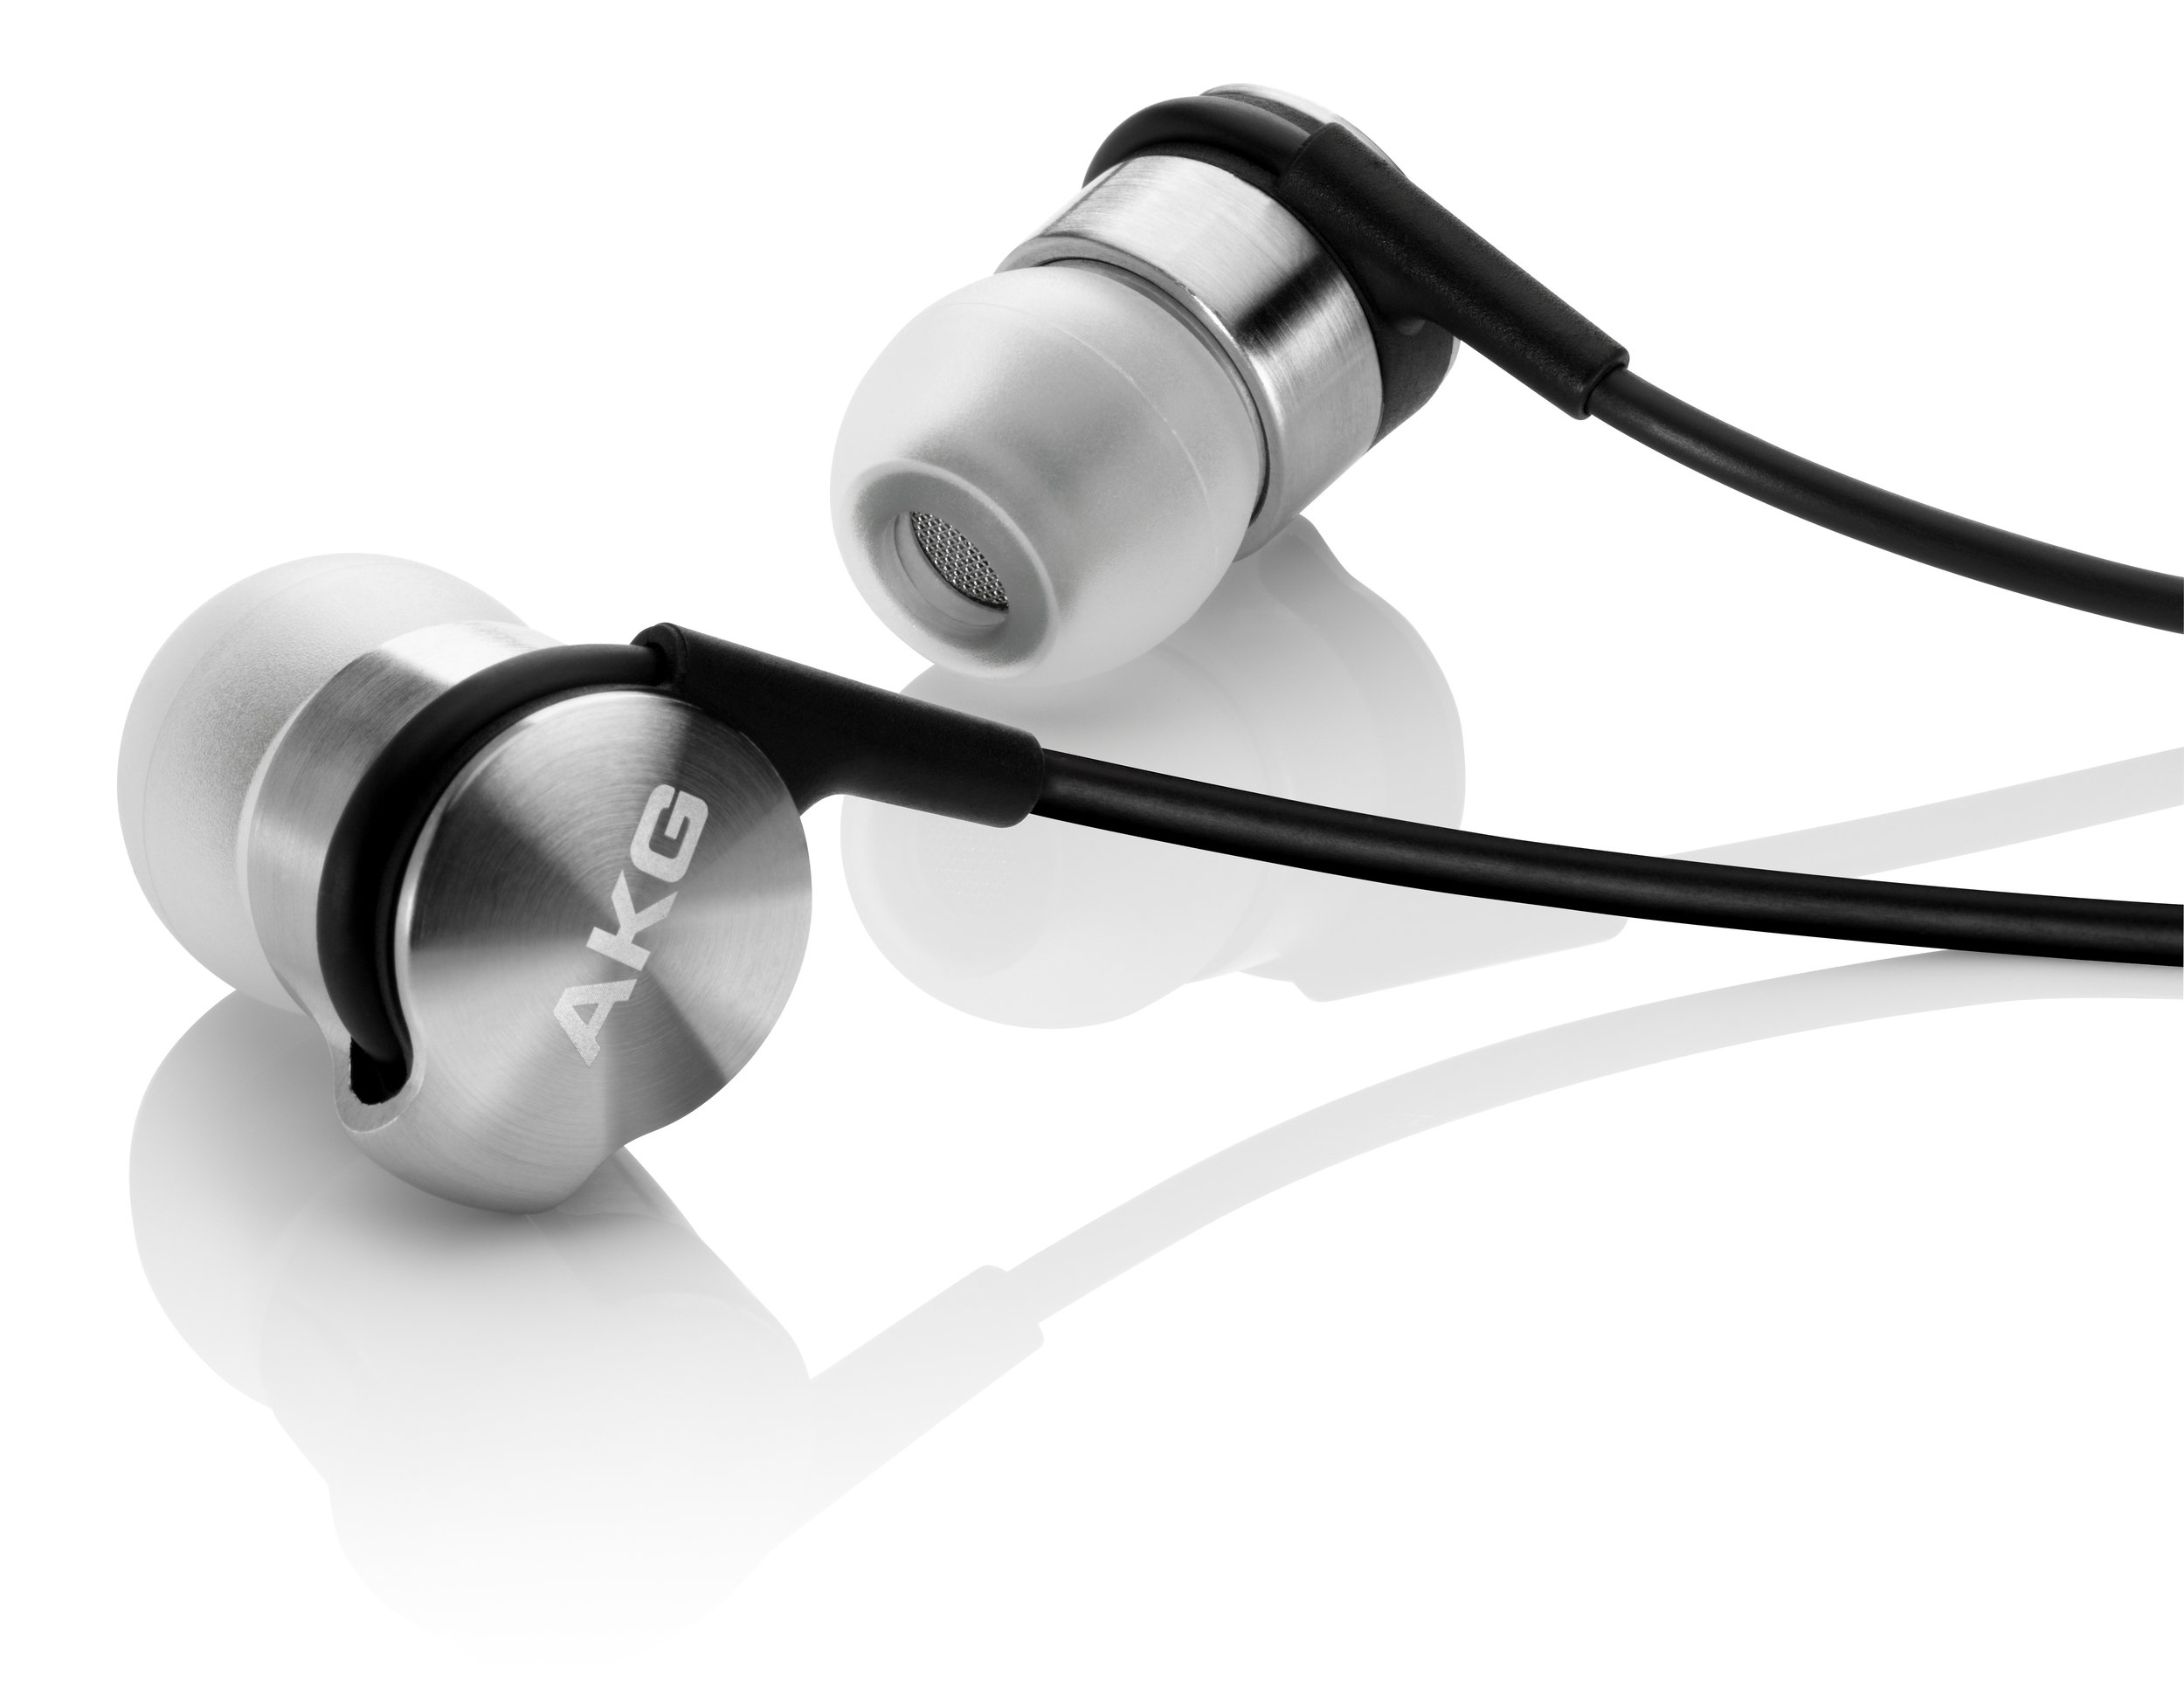 AKG K3003i Reference Class In-Ear Headphones by AKG